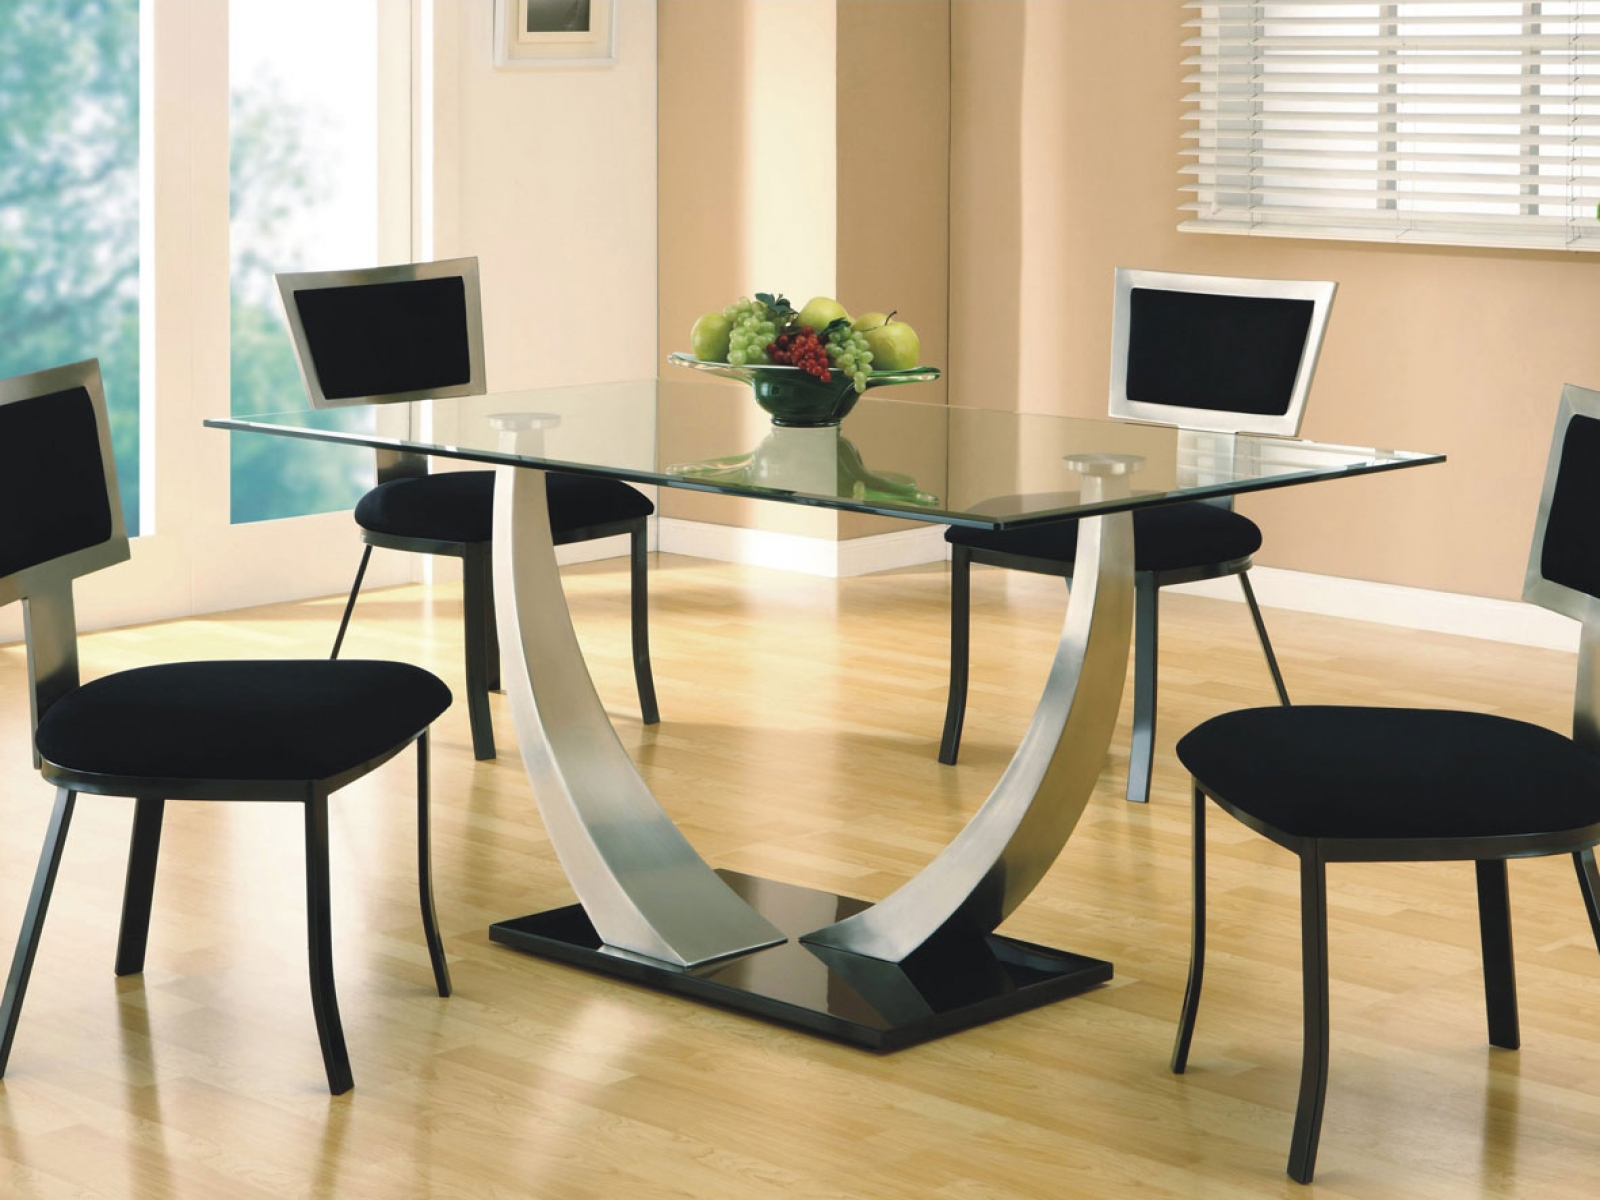 square dining table design for your home d cor